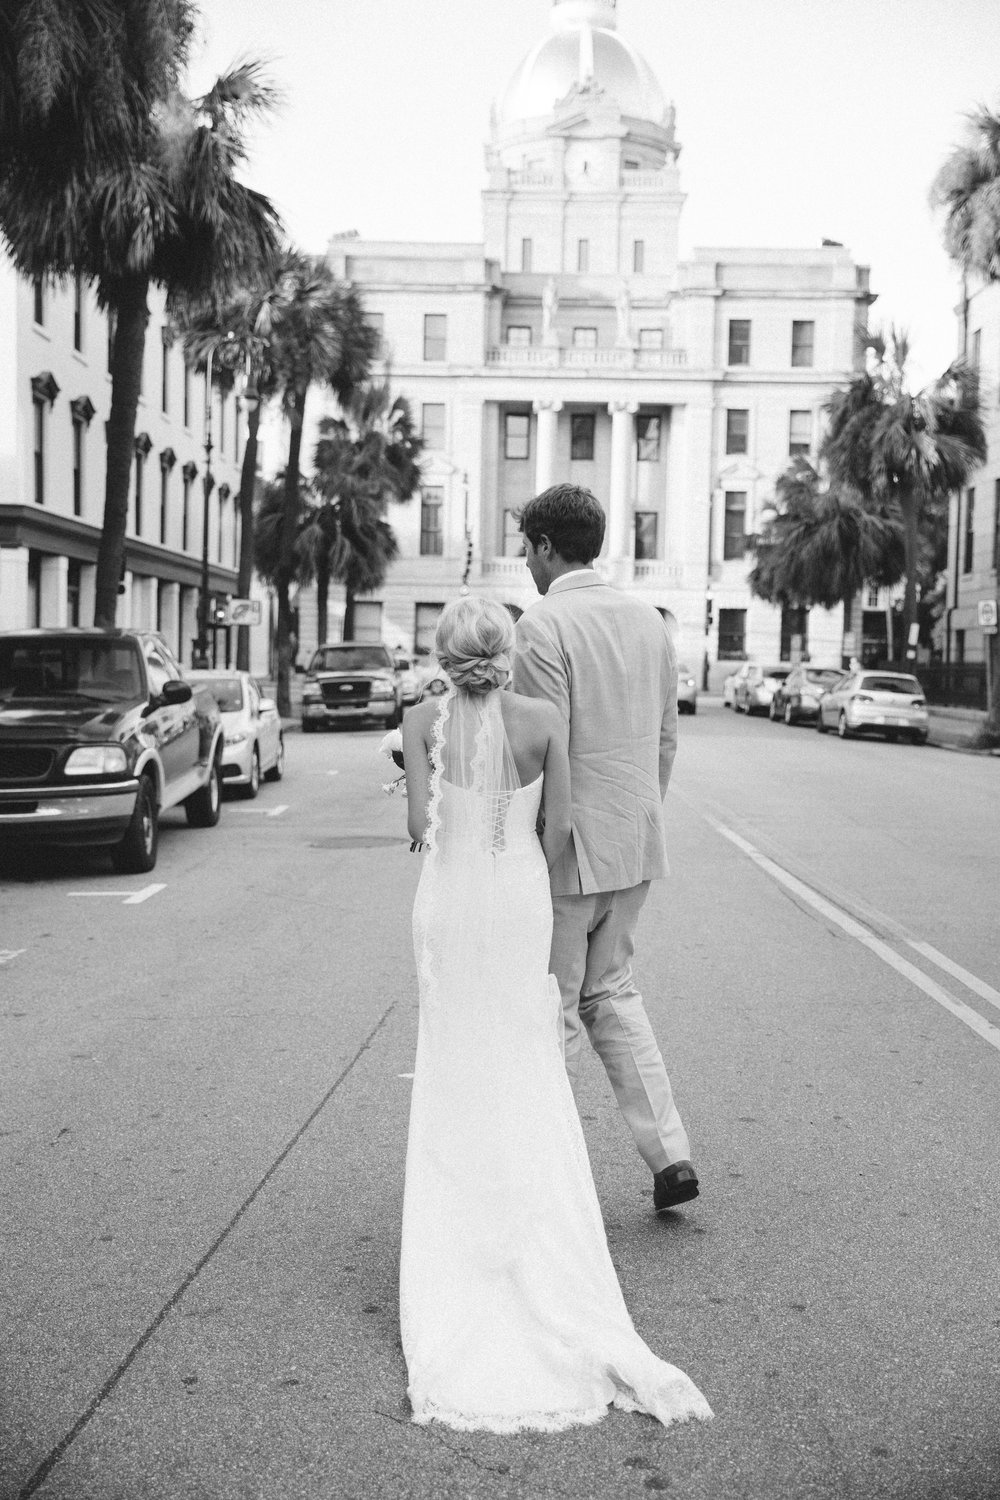 anna-benton-photography-savannah-bridal-boutique-ivory-and-beau-bridal-boutique-ti-adora-7552-lace-wedding-dress-jaclyn-jordan-anne-veil-southern-wedding-savannah-wedding-coastal-wedidng-savannah-wedding-planner-savannah-florist-savannah-weddings-18.jpg